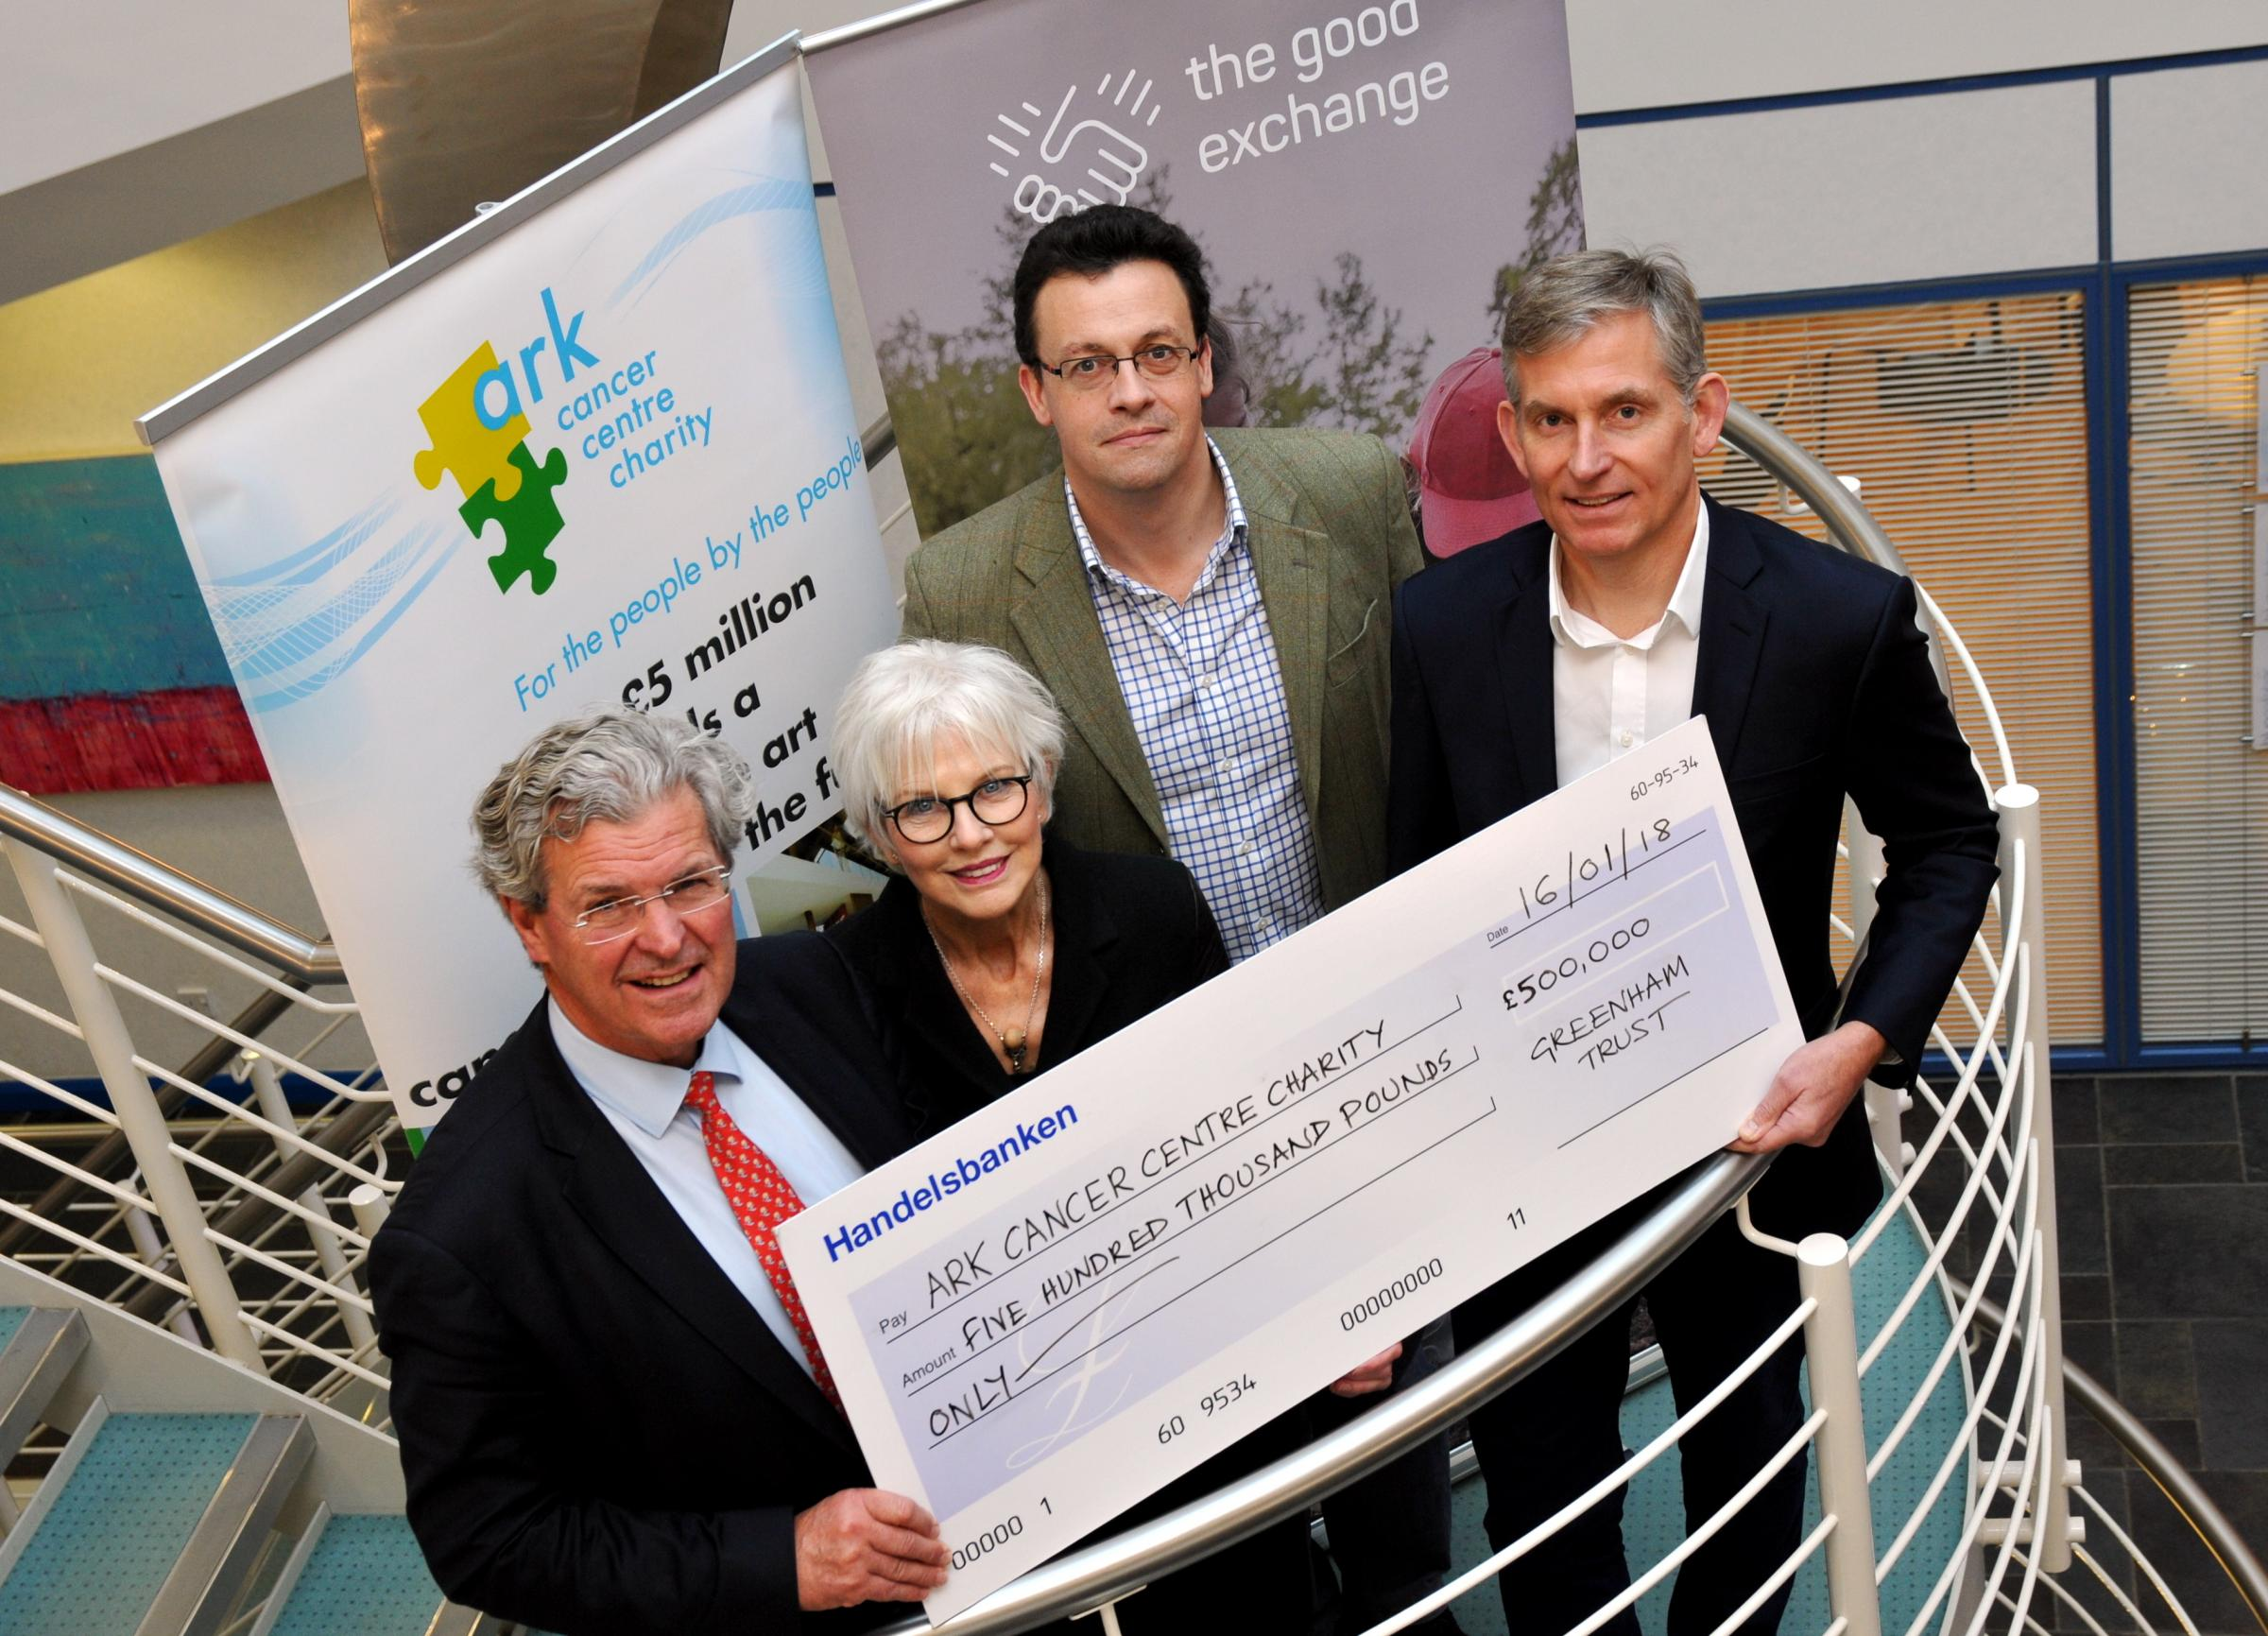 From left, Ark Cancer Centre Charity trustees Merv Rees and Sandra Fell are presented with the £500,000 match-funding cheque by Ed Gairdner, chief operating officer of The Good Exchange, and Chris Boulton, chief executive officer of Greenham Trust. Image